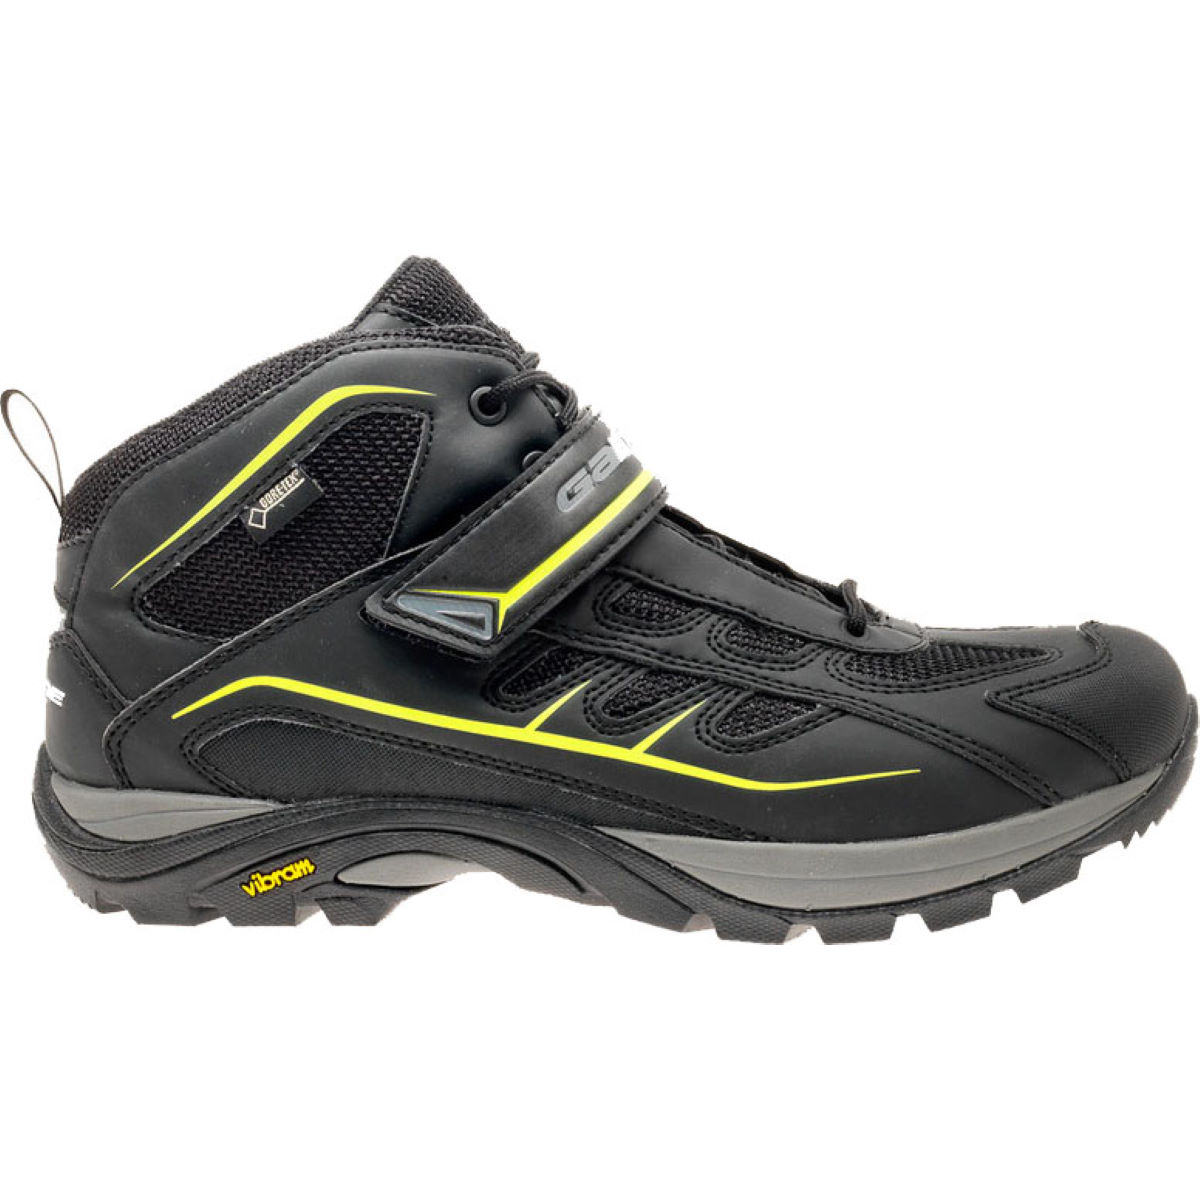 Gaerne Gaerne G.Mid Gore-Tex Off Road Shoes   Cycling Shoes